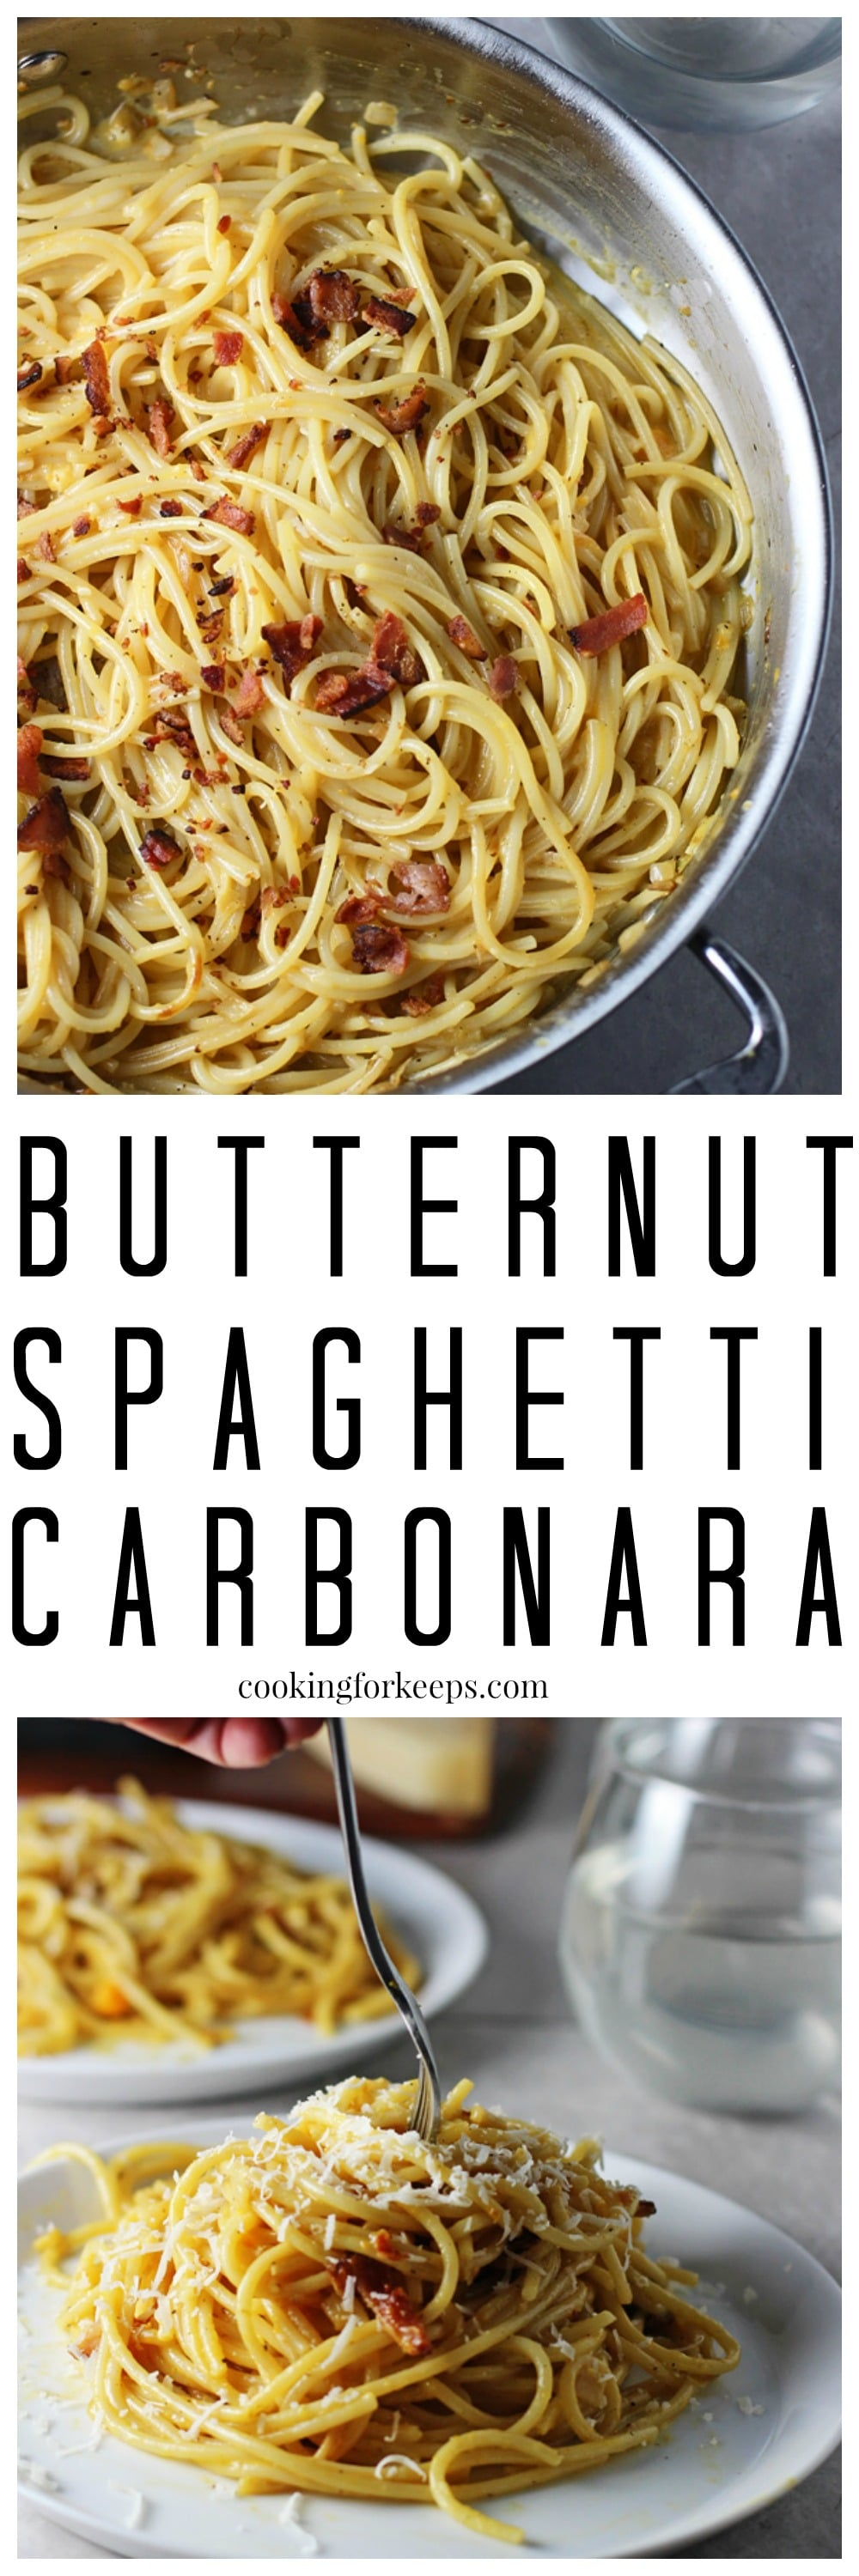 Butternut Spaghetti Carbonara Cooking For Keeps